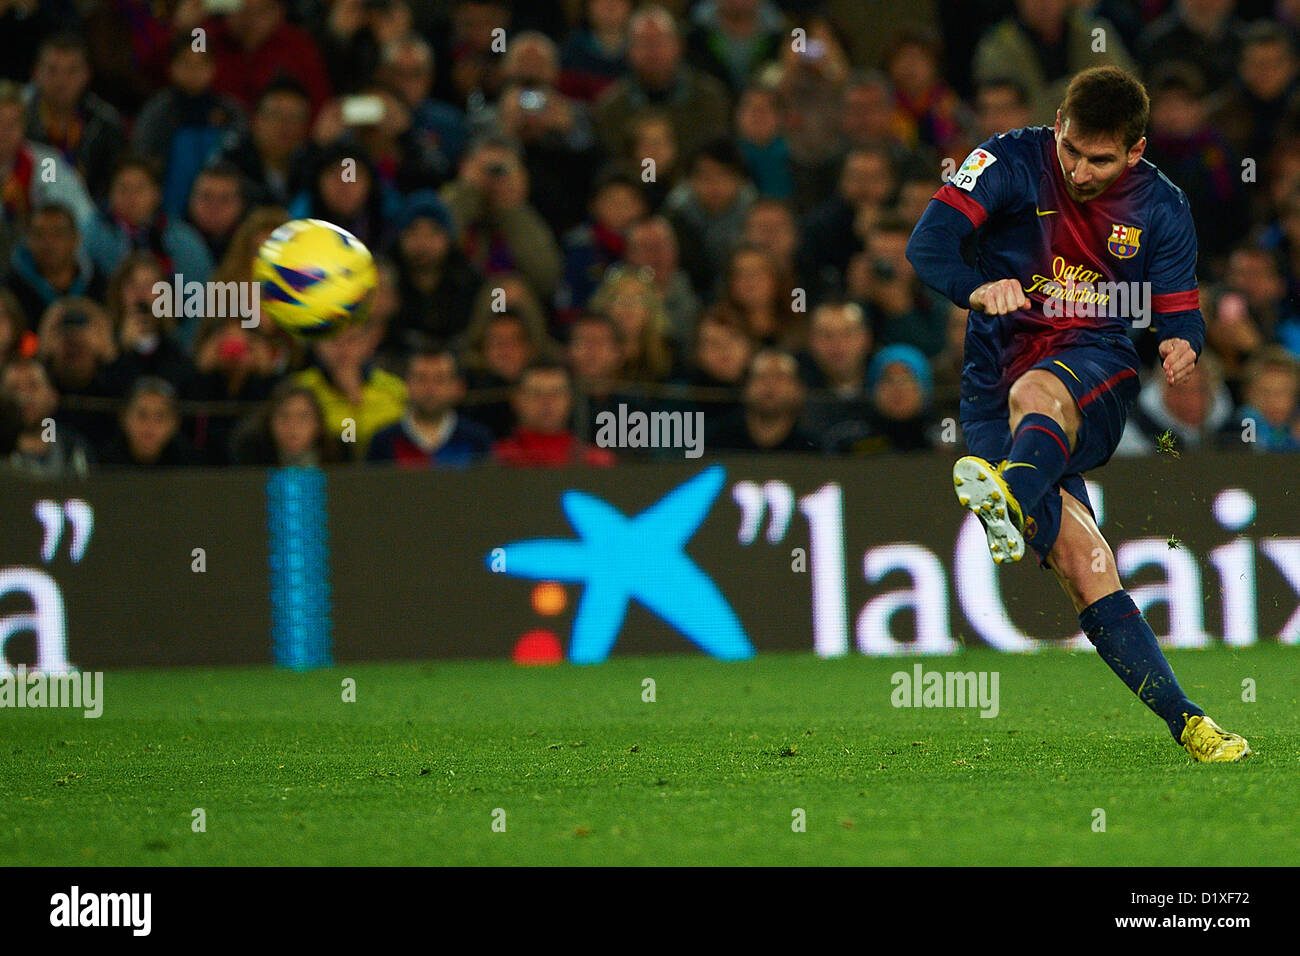 Lionel Messi (FC Barcelona), during La Liga soccer match between FC Barcelona and RCD Espanyol, at the Camp Nou - Stock Image